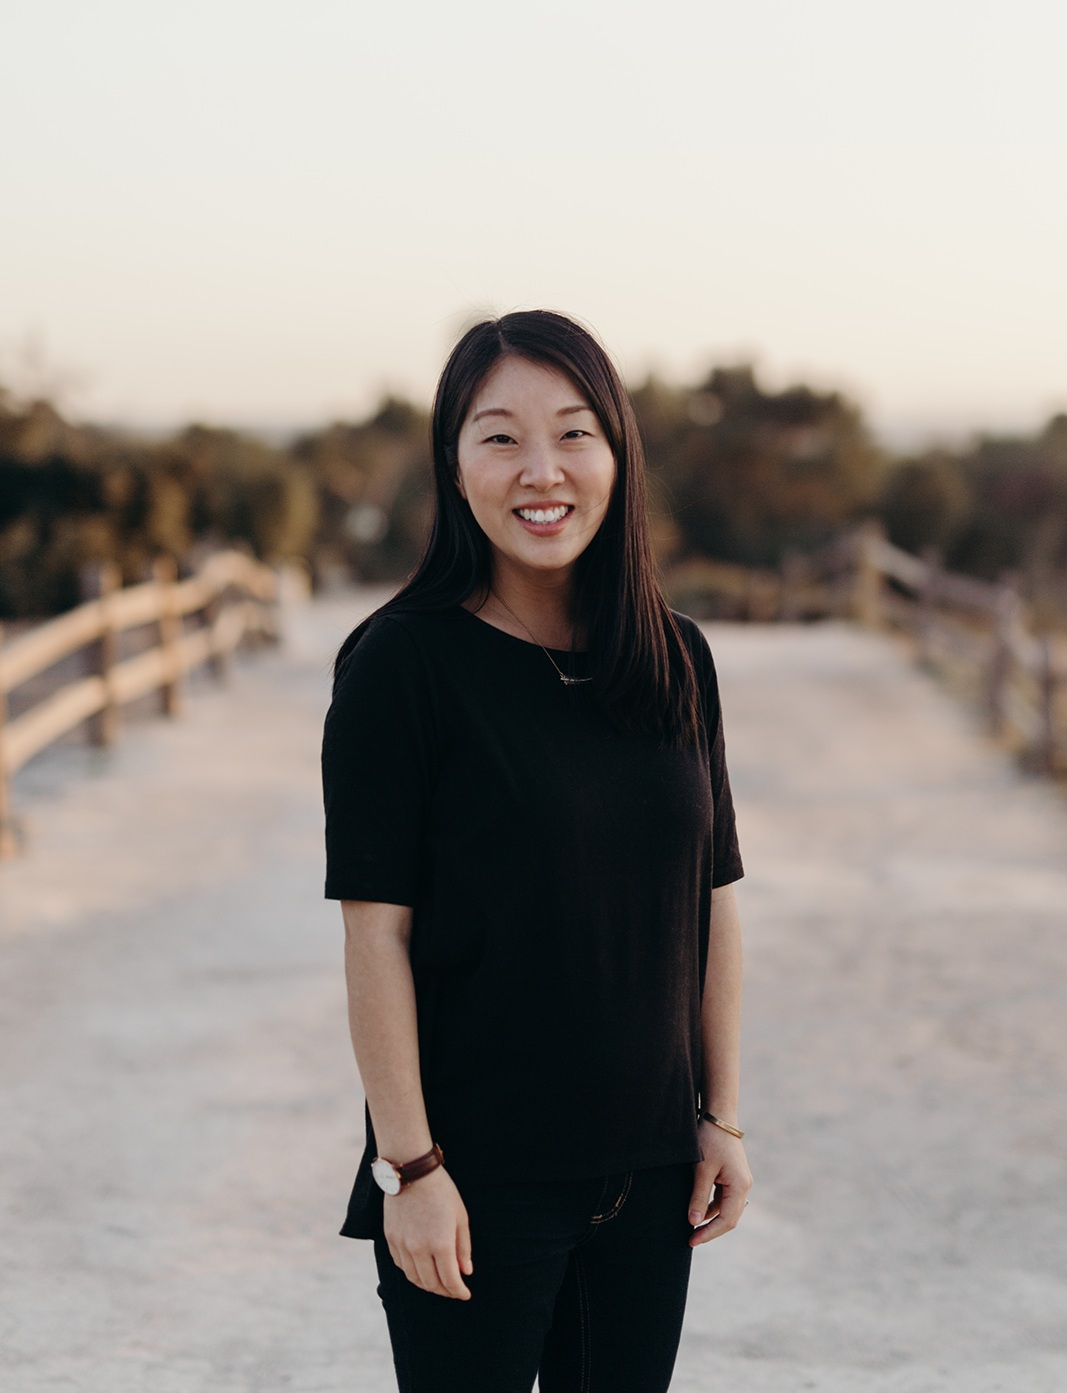 Andrea Chung  |  Co-founder, TMP